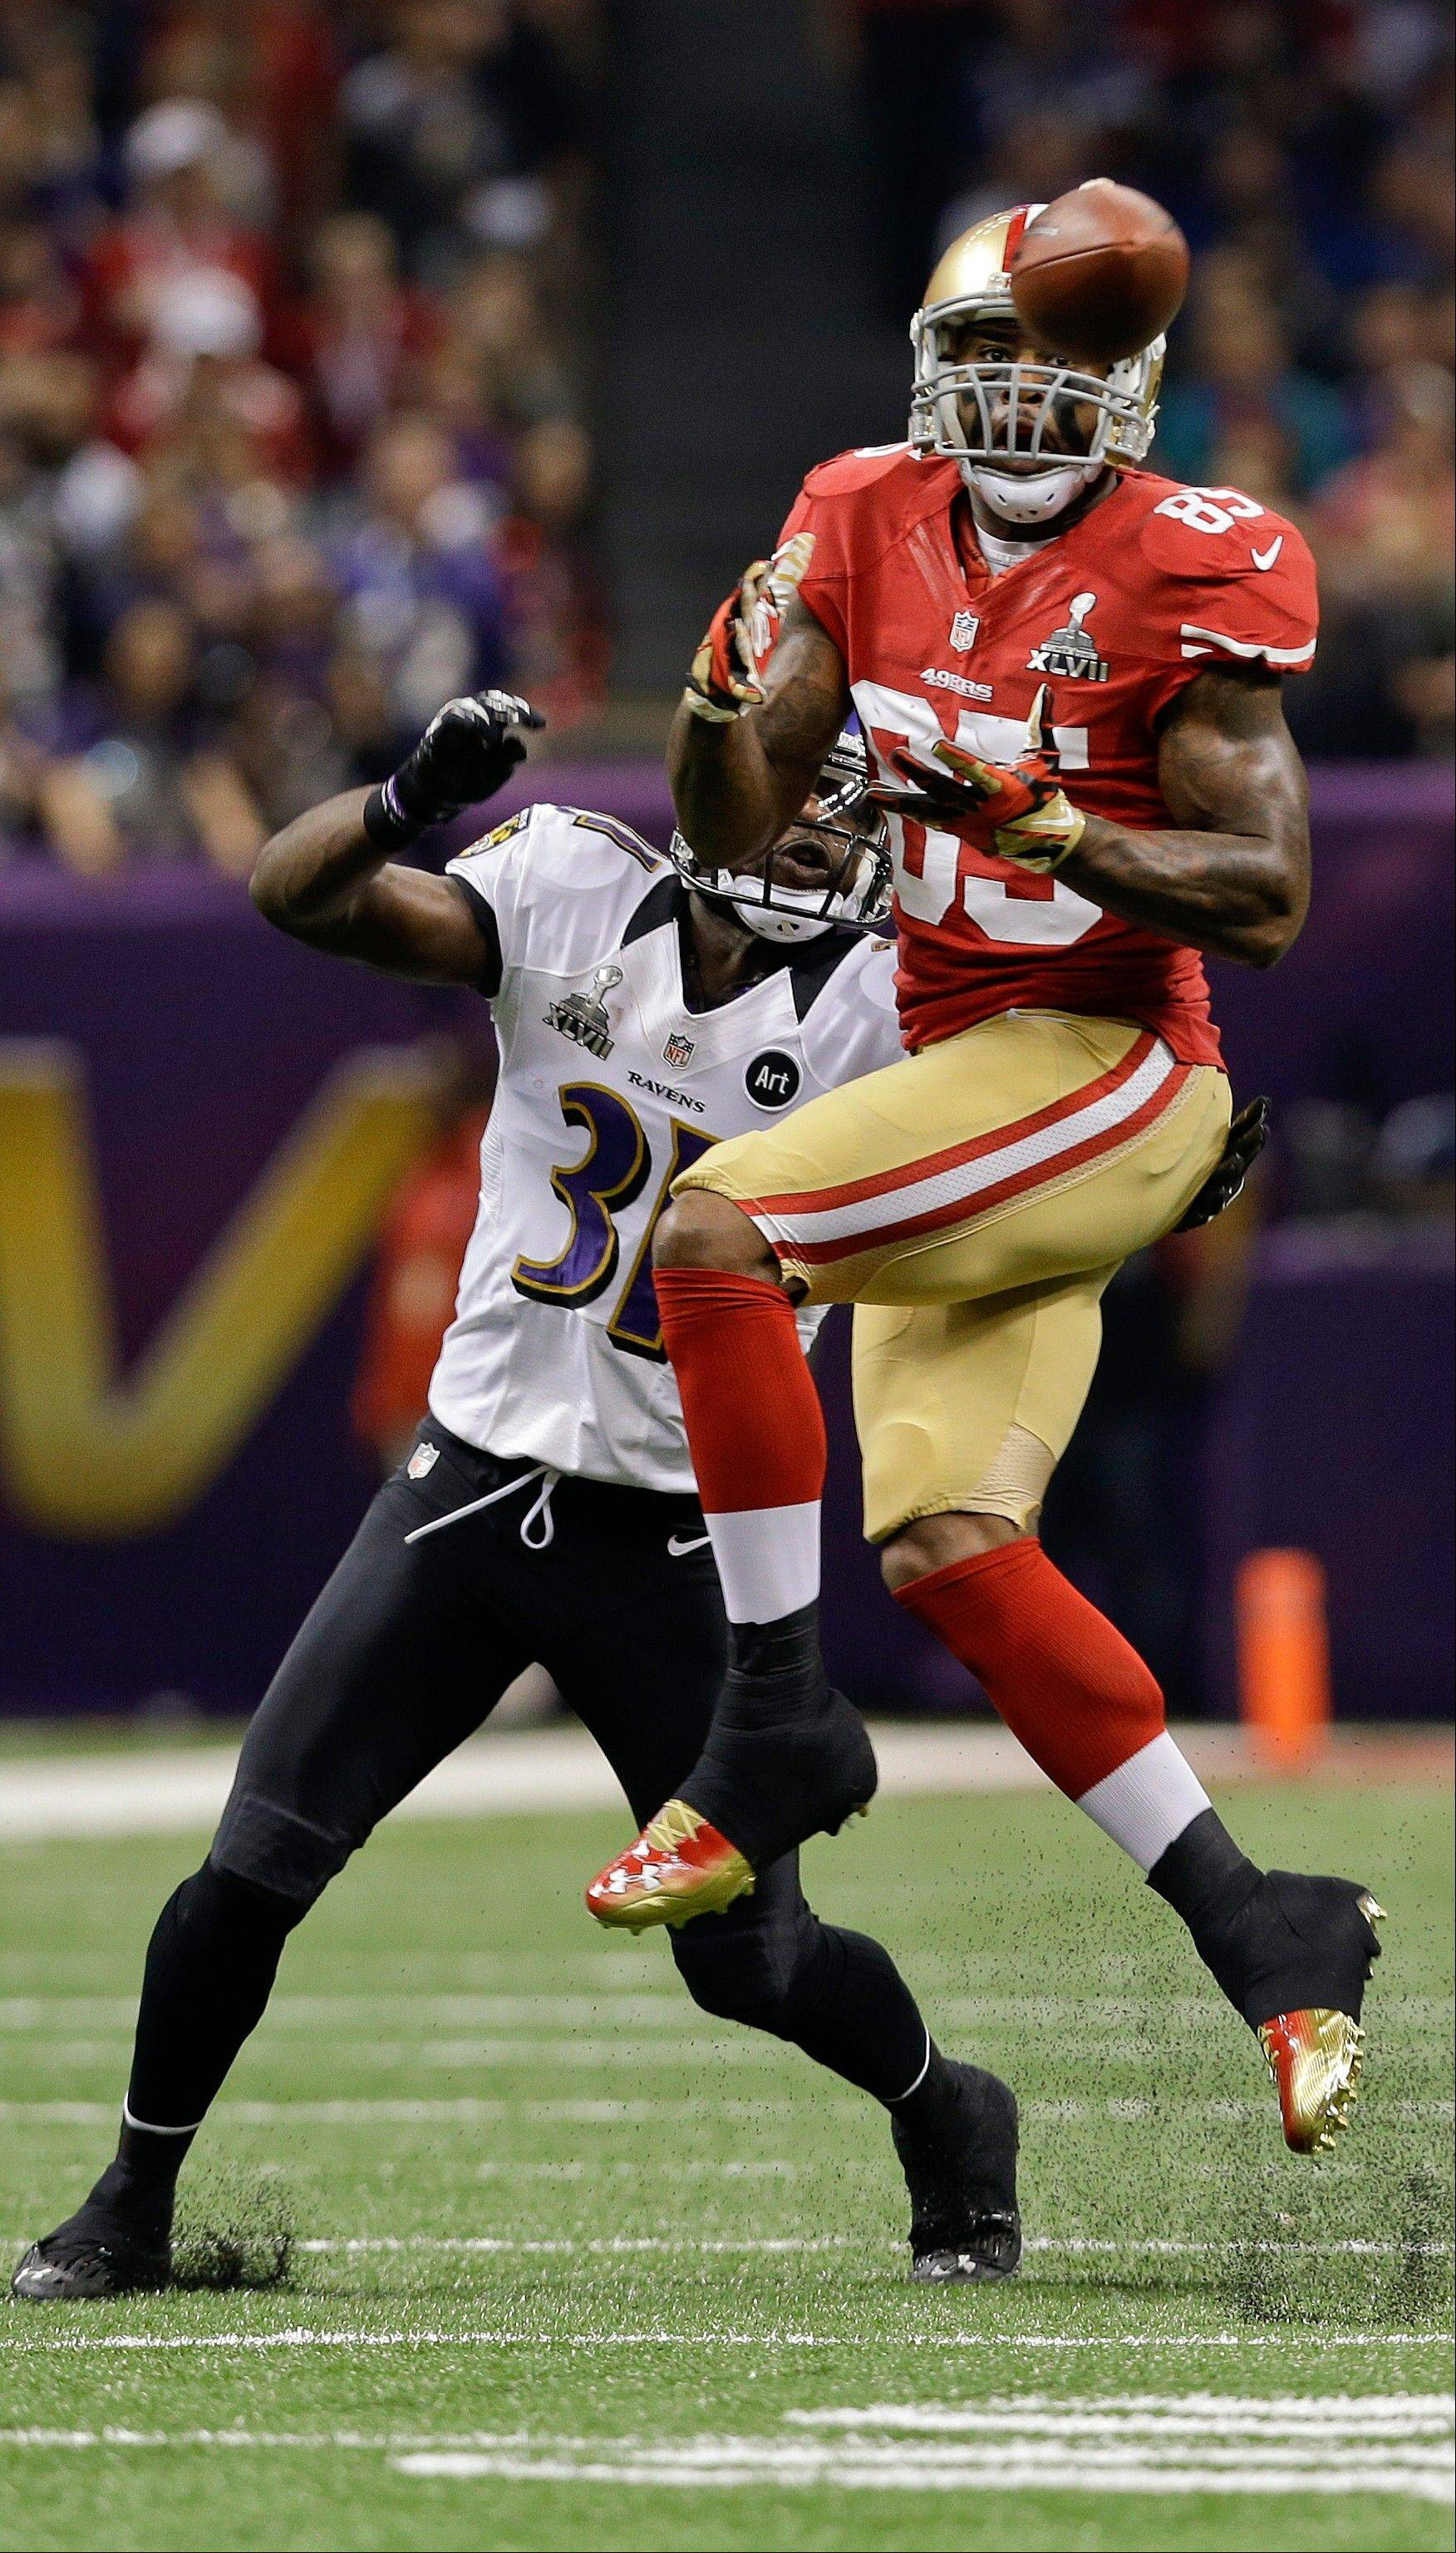 San Francisco 49ers tight end Vernon Davis (85) catches a pass against Baltimore Ravens safety Bernard Pollard (31) in the first quarter.